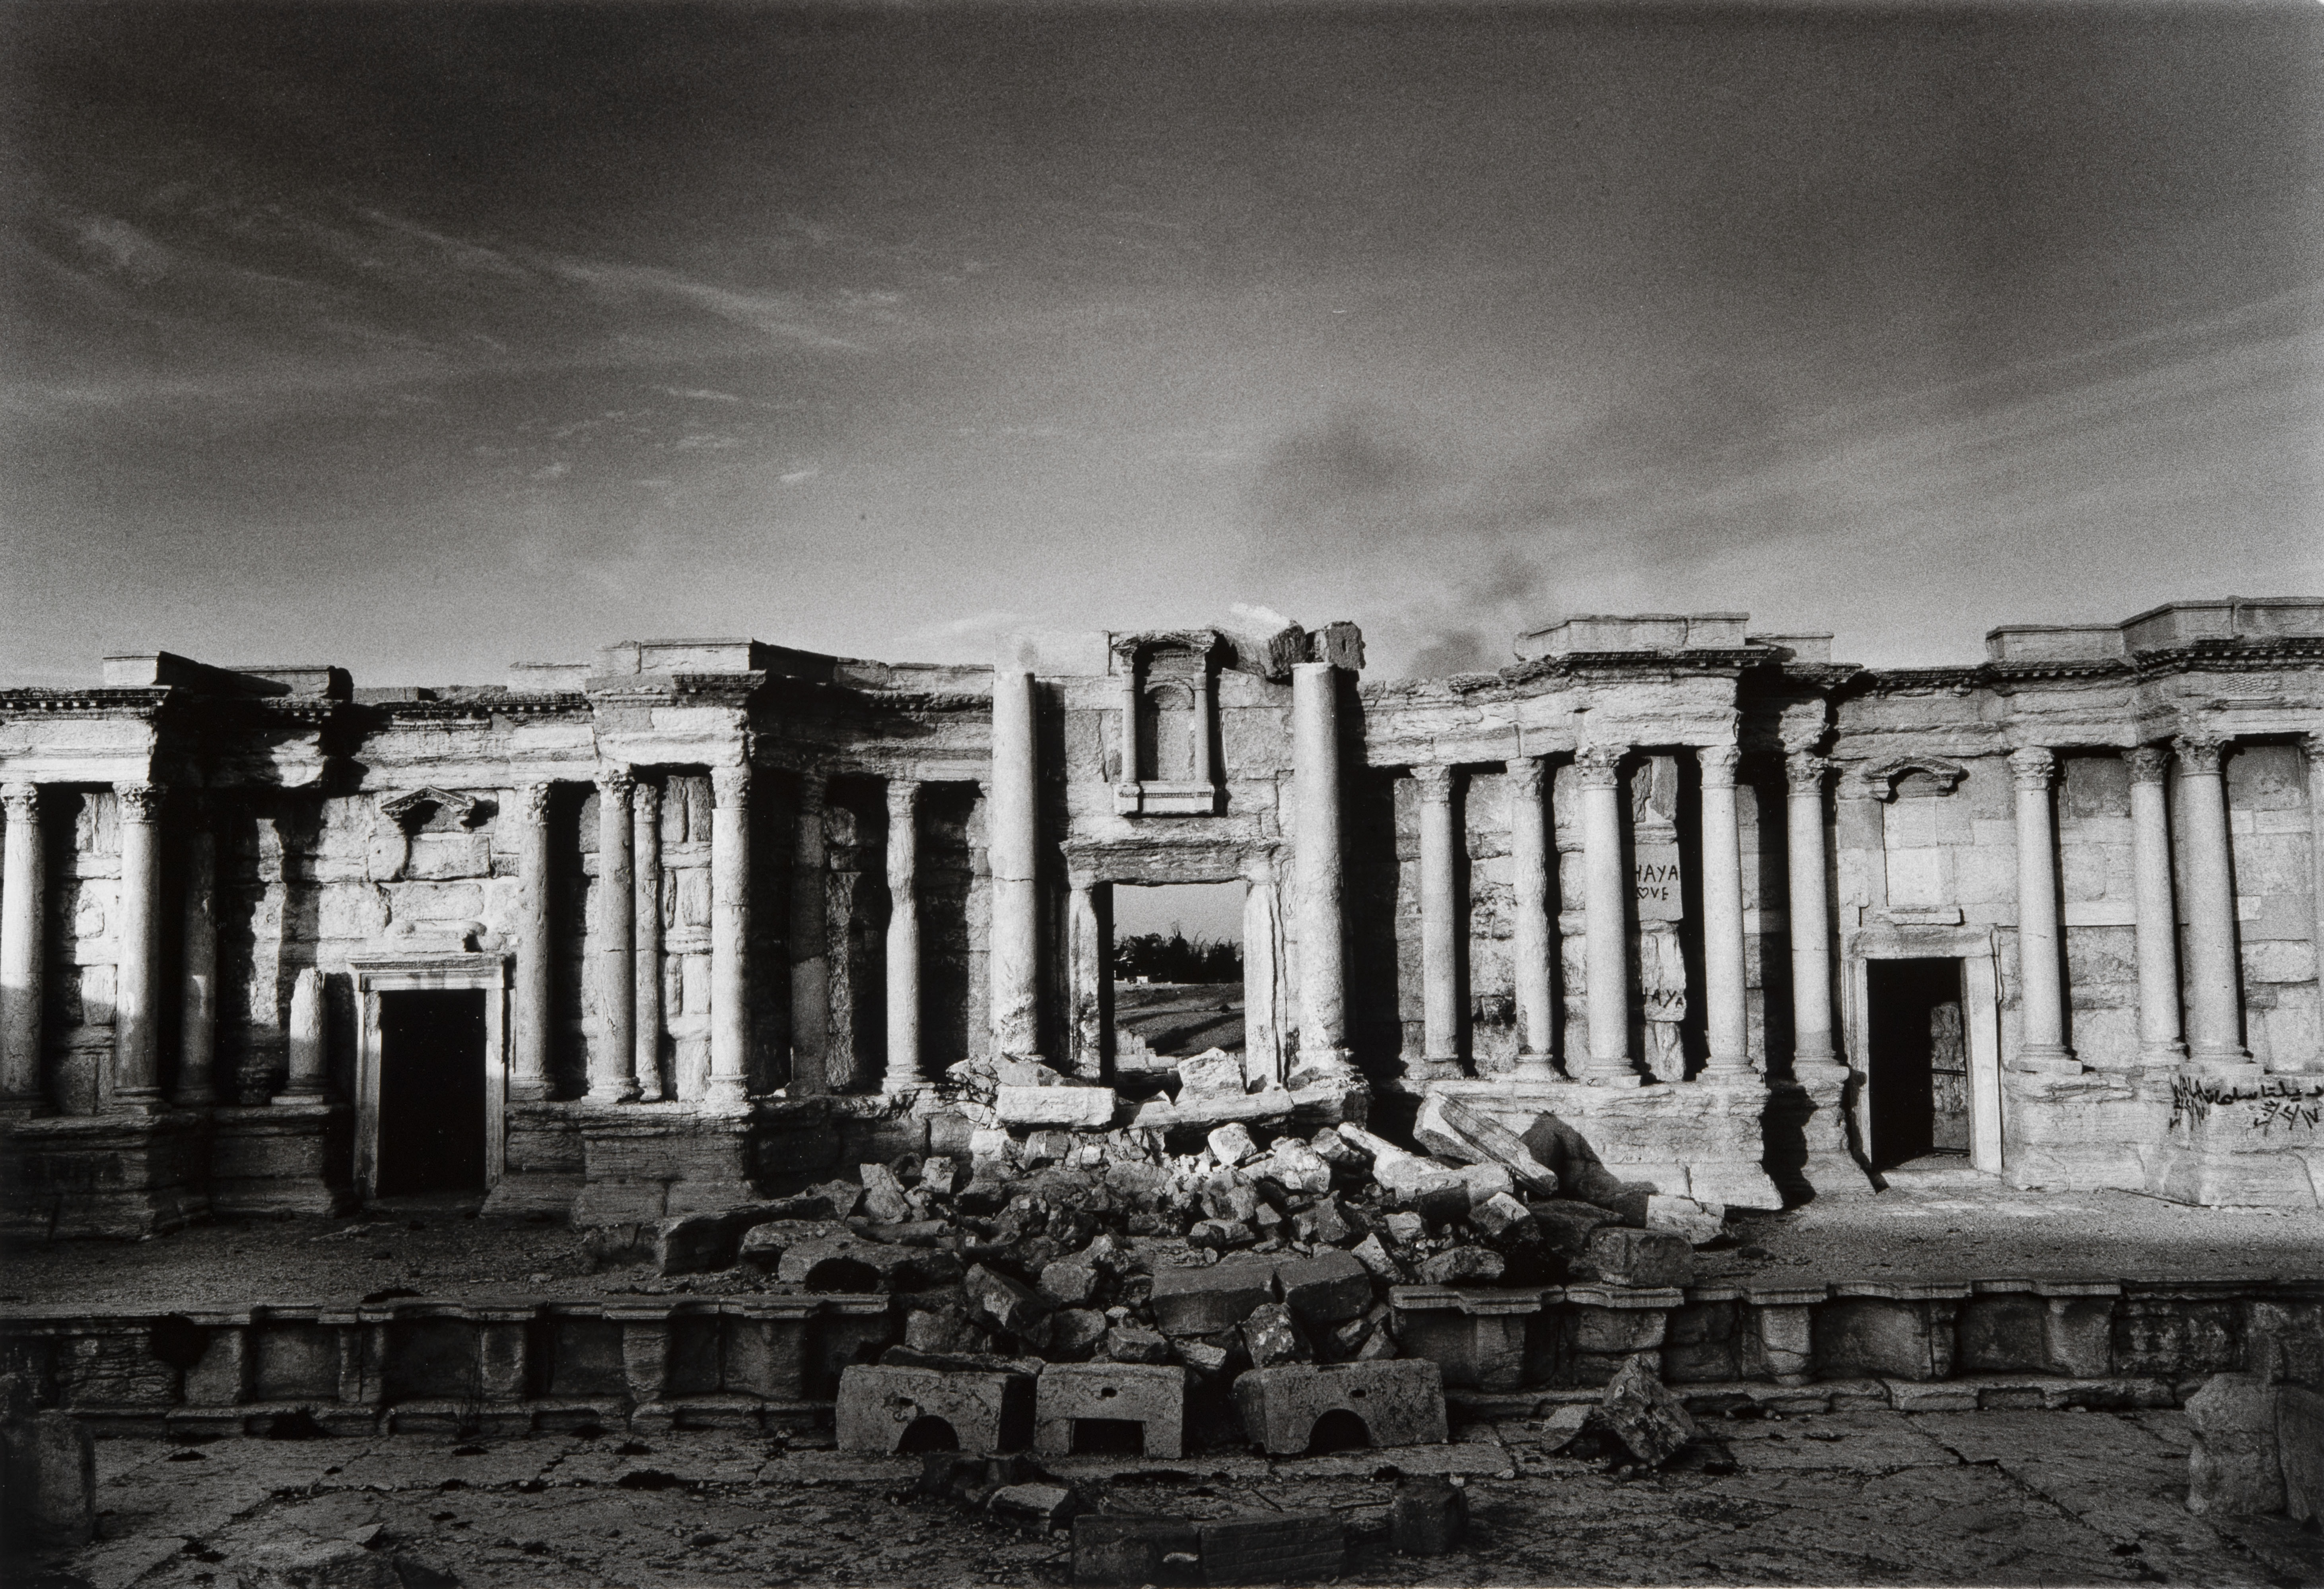 The Theatre on the Roman City of Palmyra, Partly Destroyed by Islamic State Fighters 2017 - Don McCullin, Tate Britain